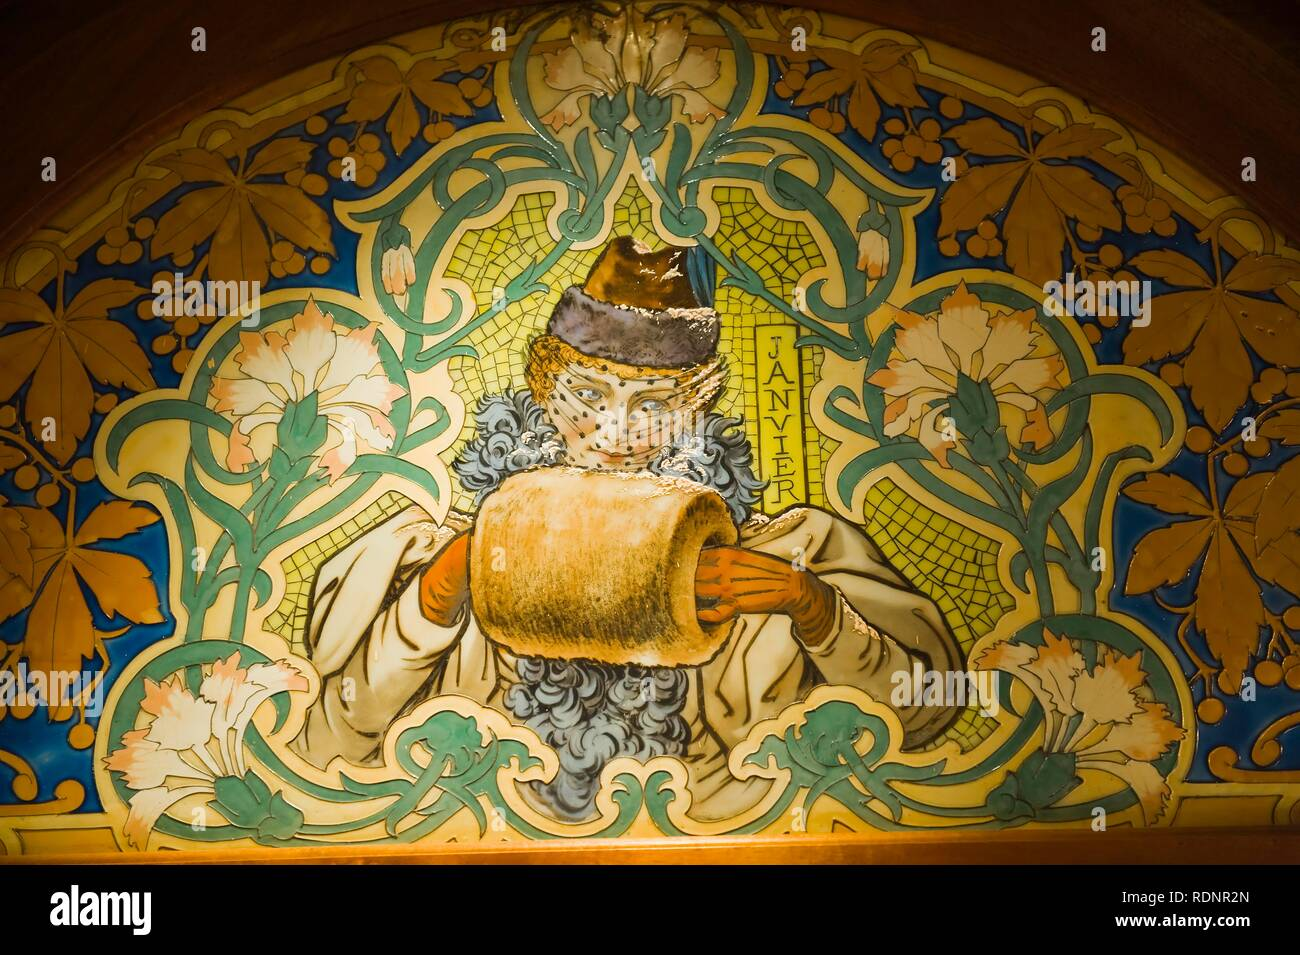 Art Deco mosaics in a bistrot, Lyon, France, Europe - Stock Image